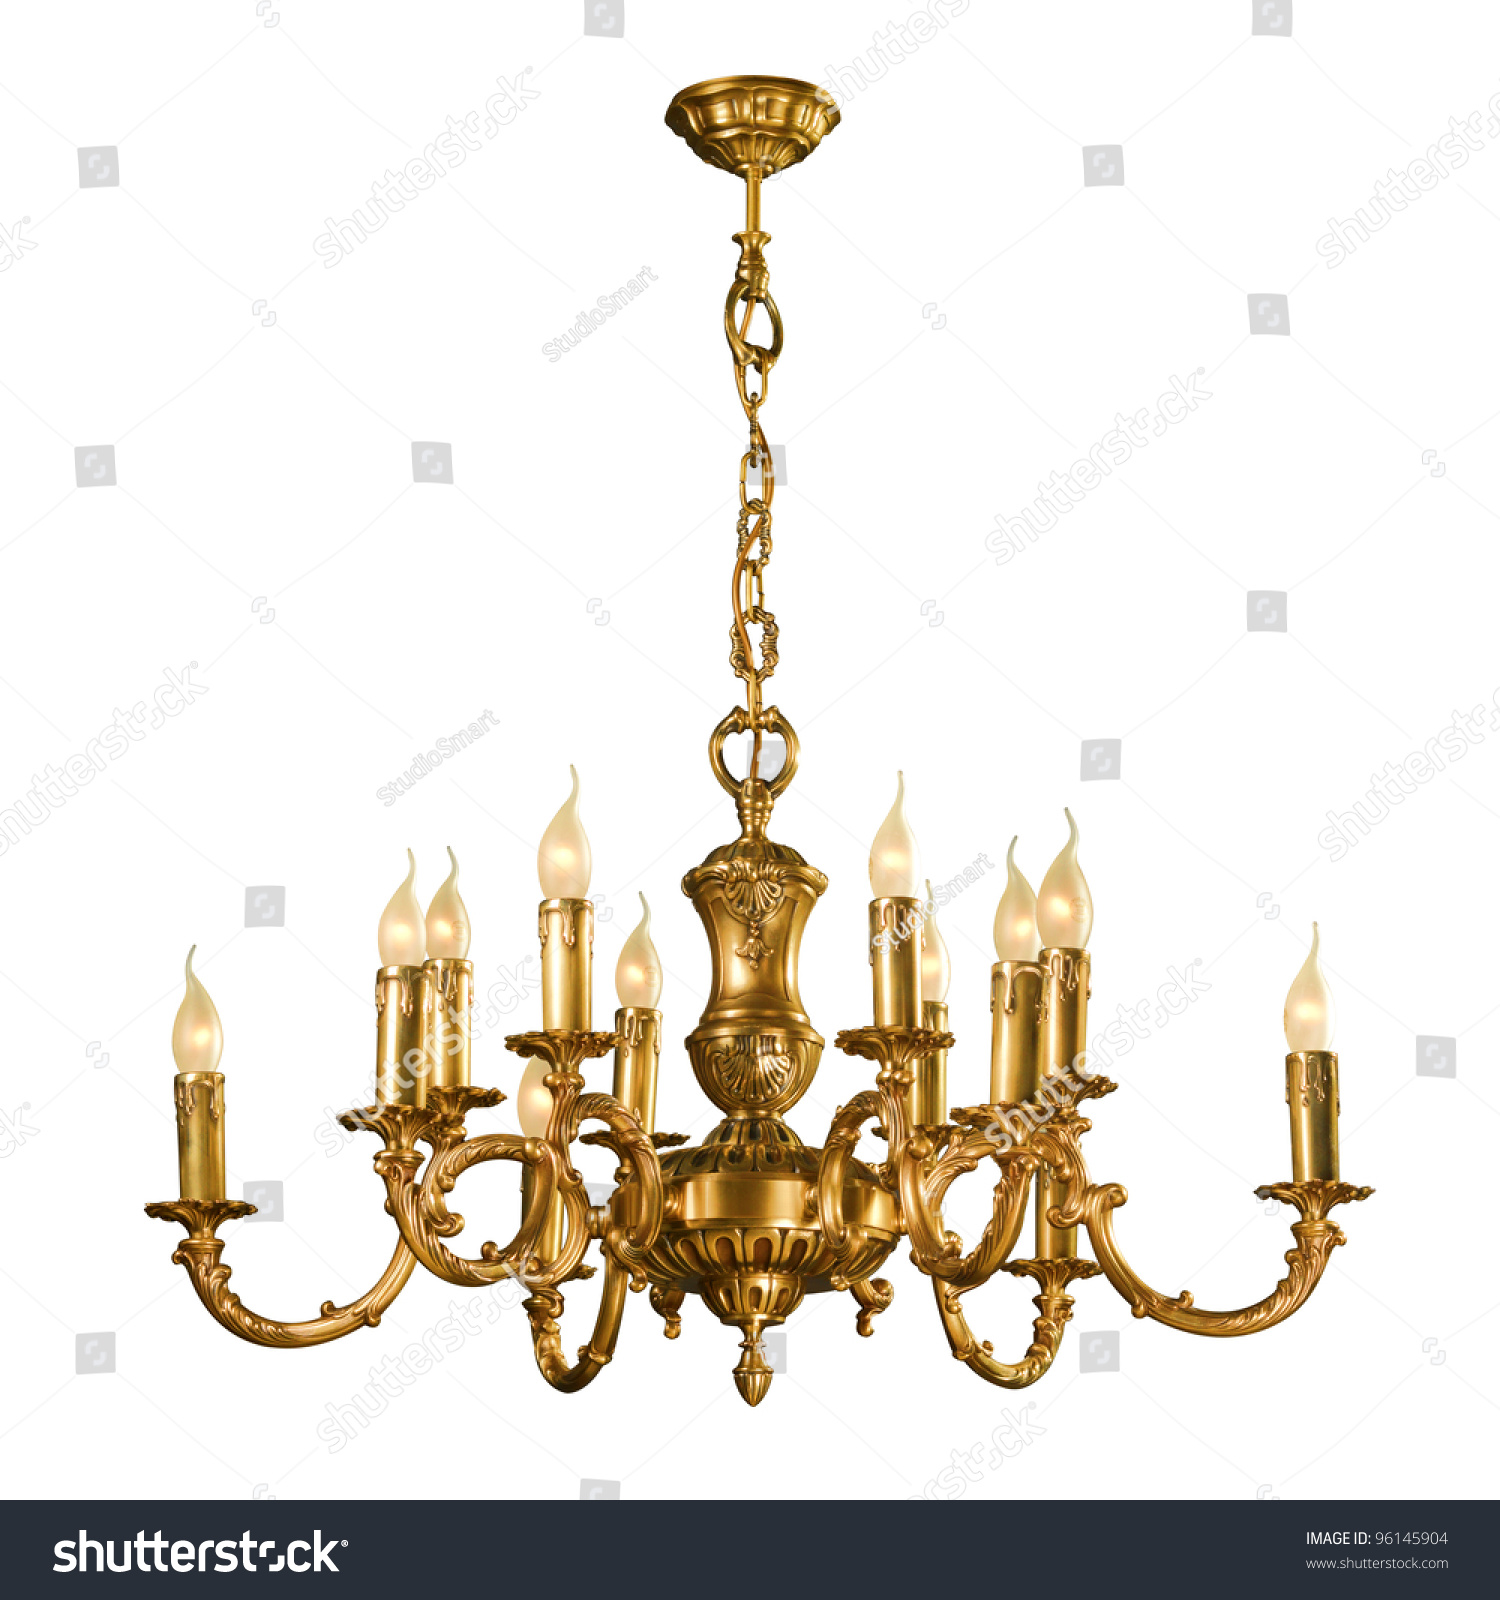 Vintage chandelier isolated on white background with clipping path vintage chandelier isolated on white background with clipping path ez canvas aloadofball Images